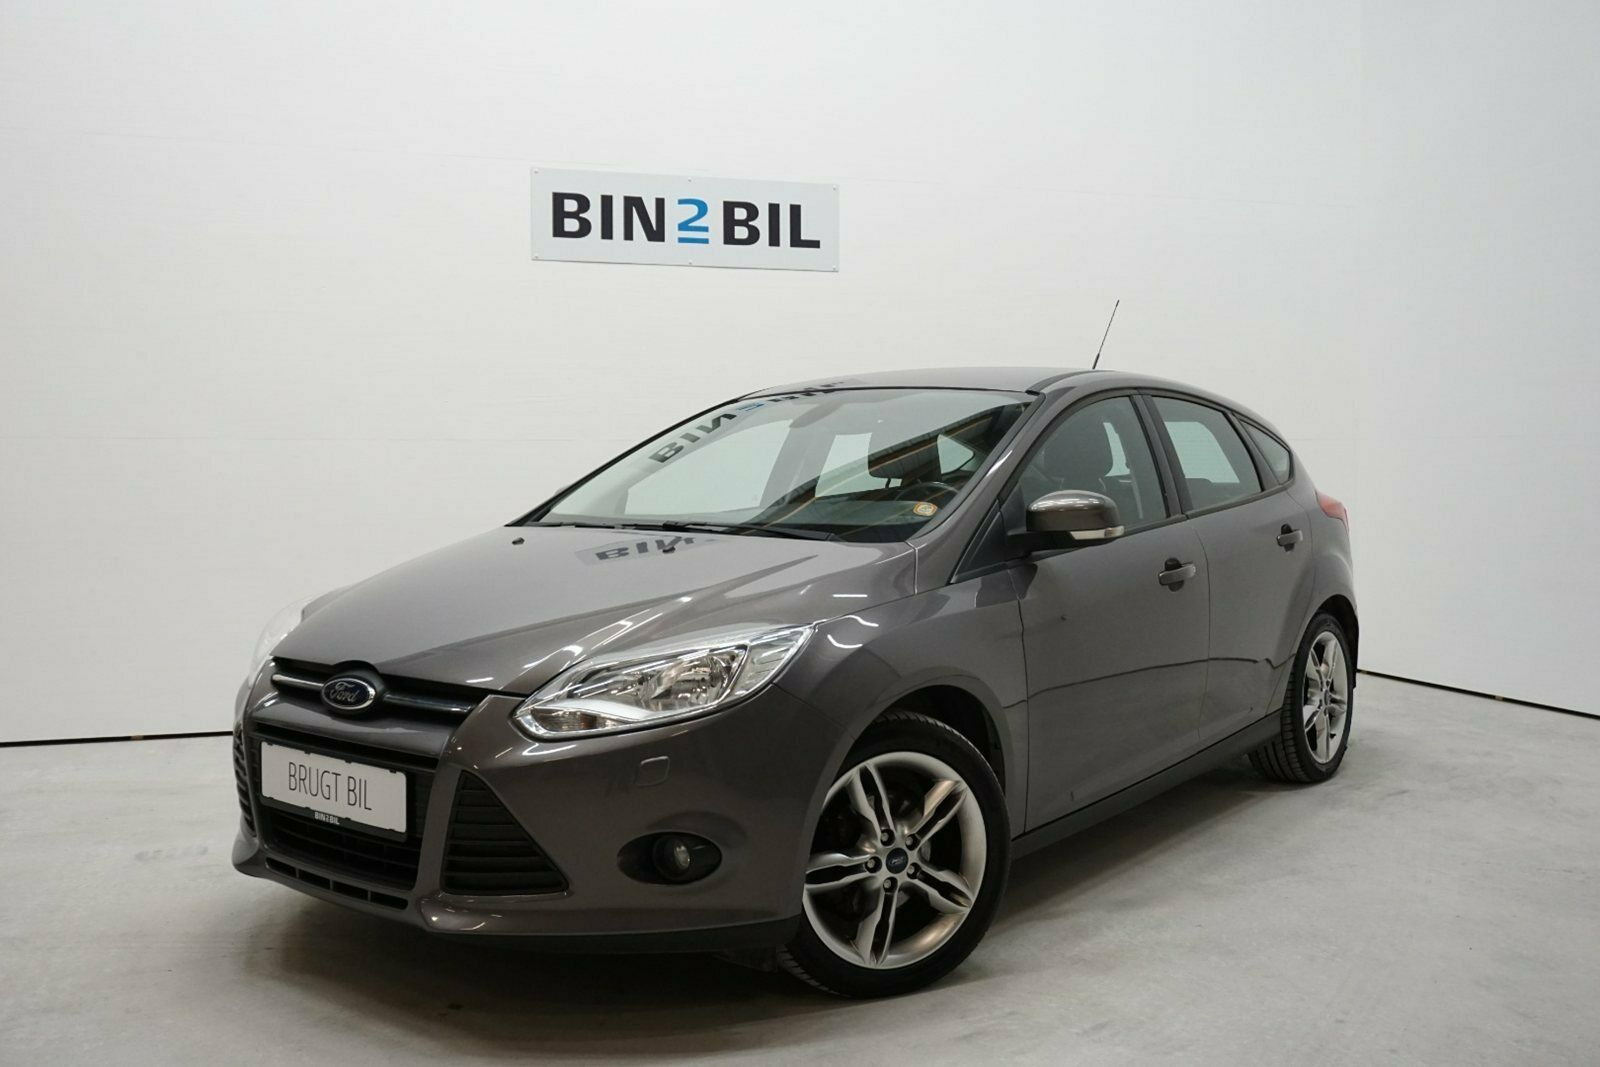 Ford Focus 1,6 Ti-VCT 105 Trend 5d - 94.900 kr.